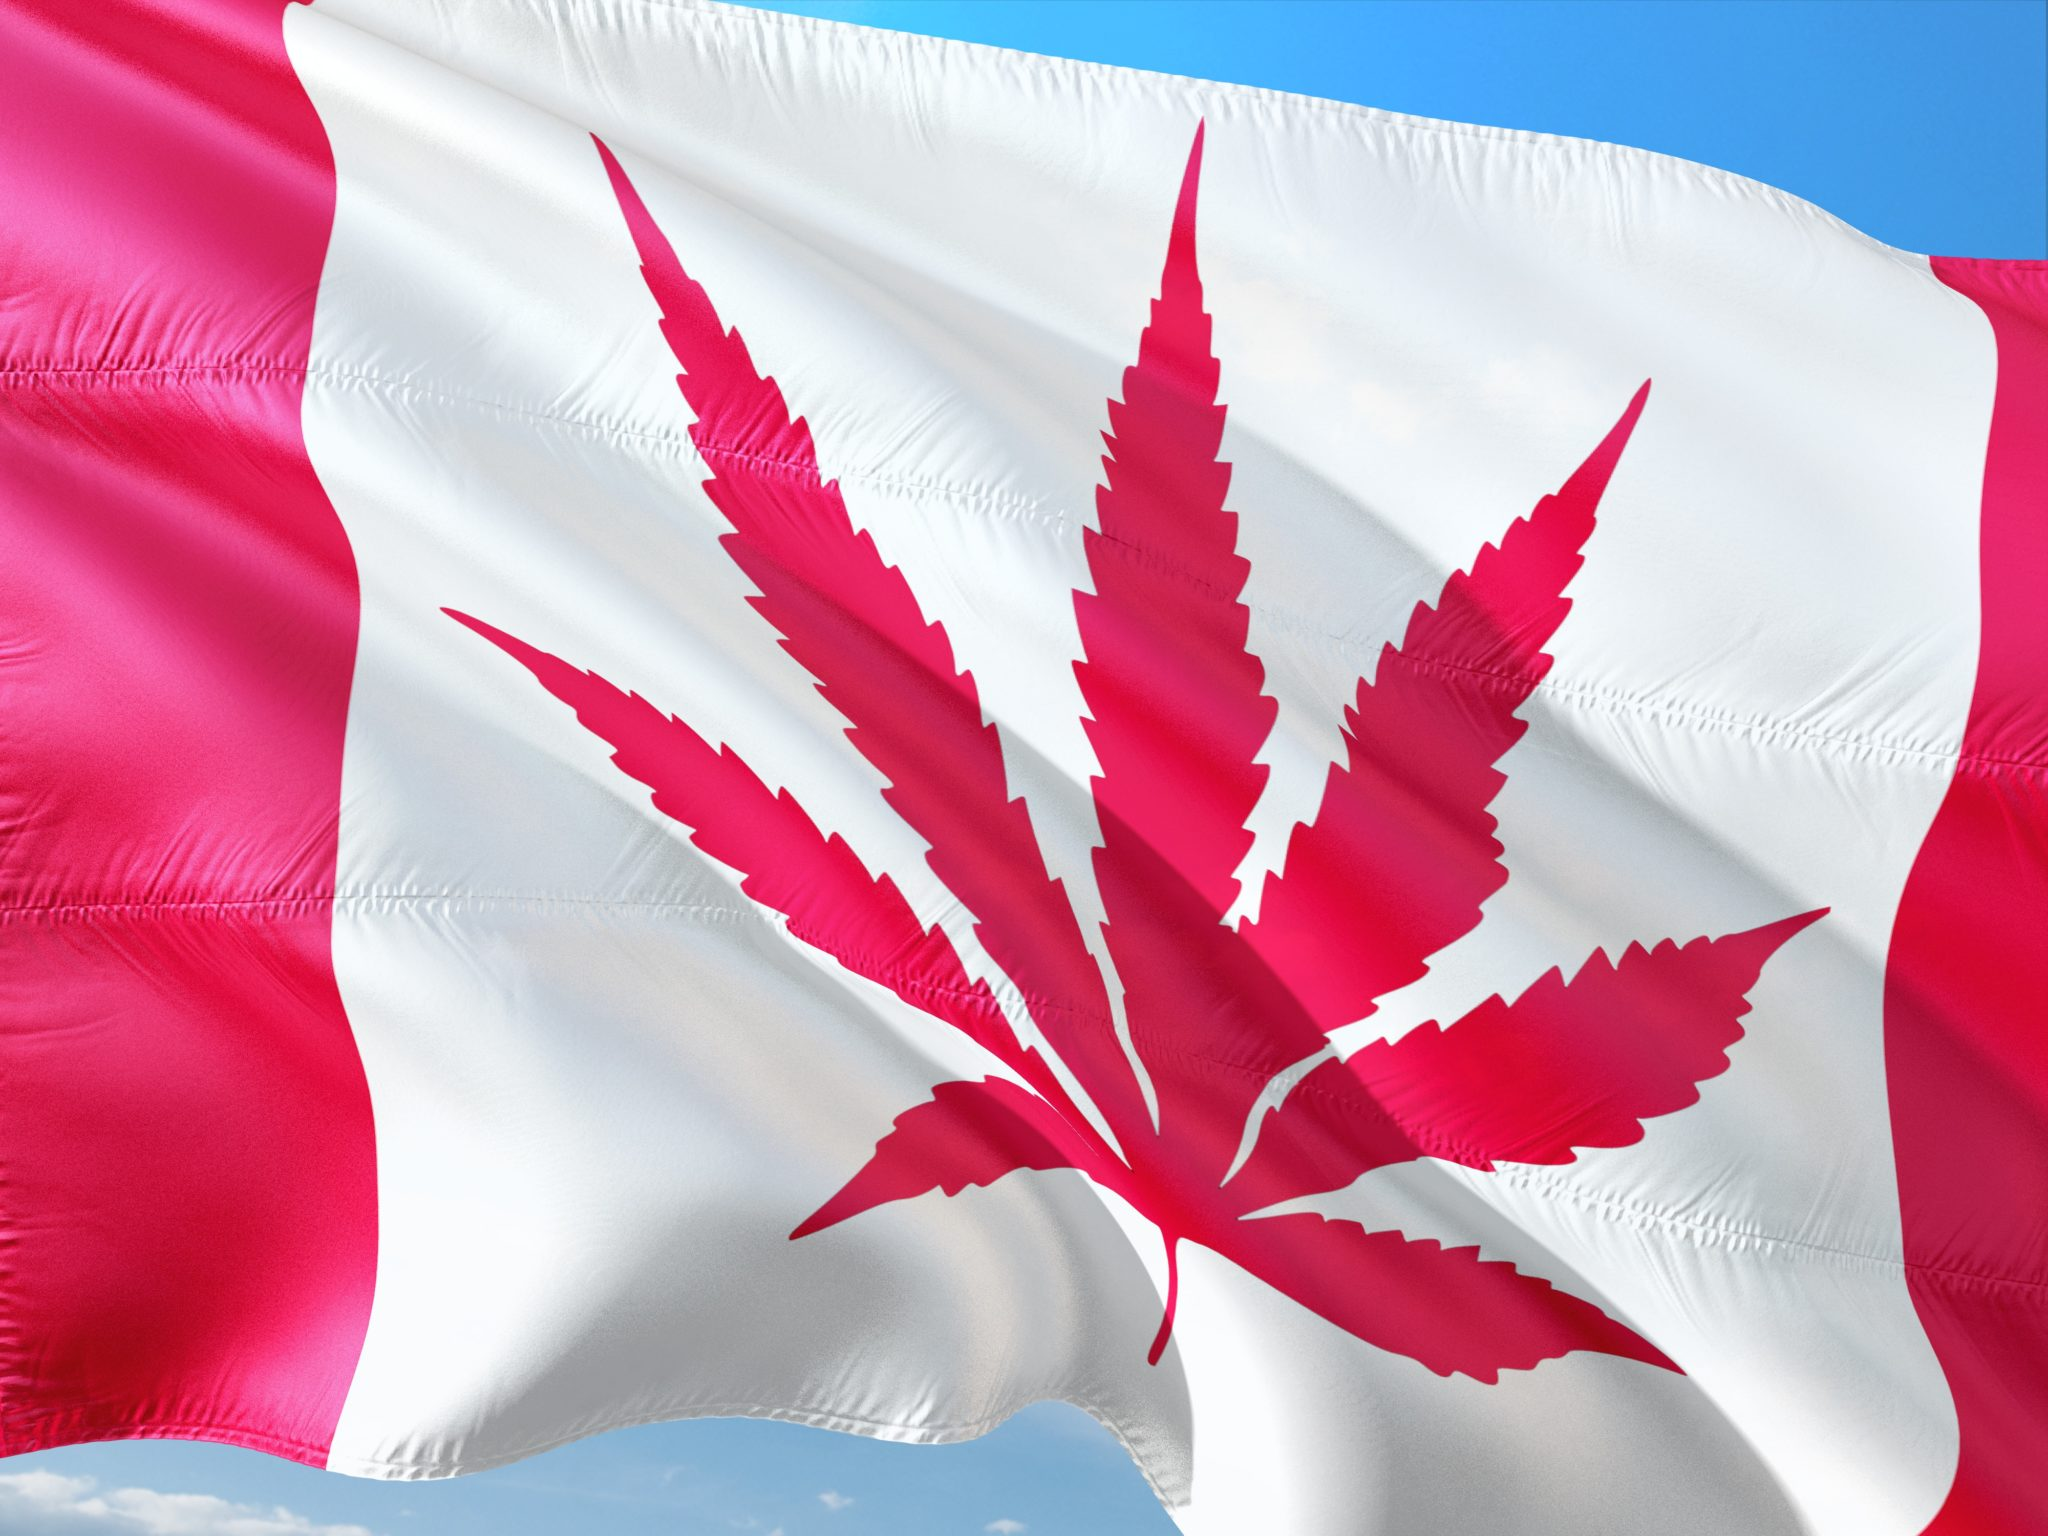 A photo of an altered Canadian flag flying against a blue sky. The typical maple leaf is replaced with a hemp or cannabis leaf.